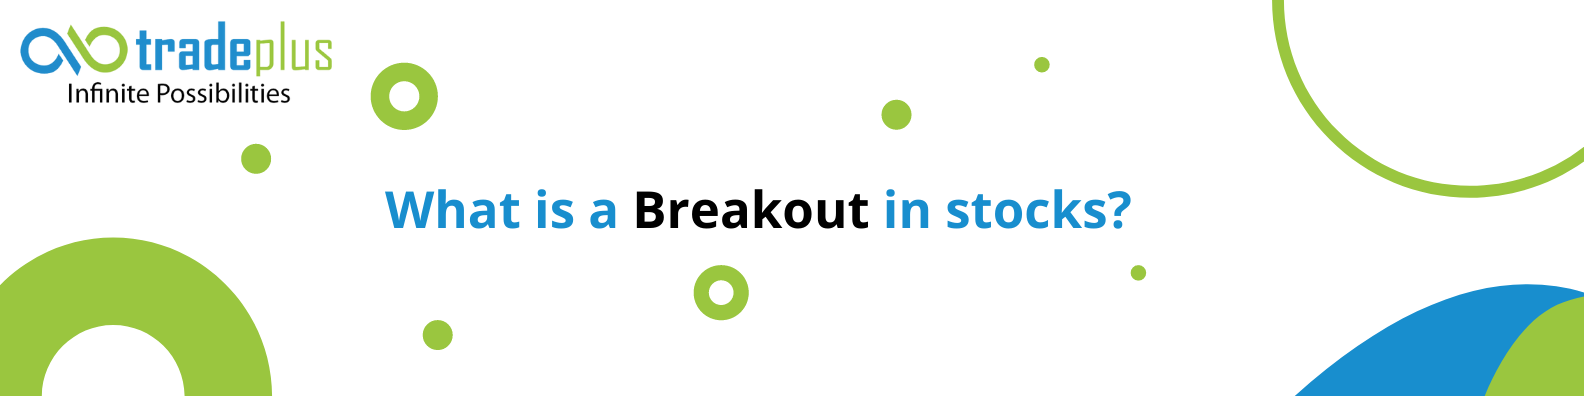 What is breakout in stocks What is a Breakout in Stocks?